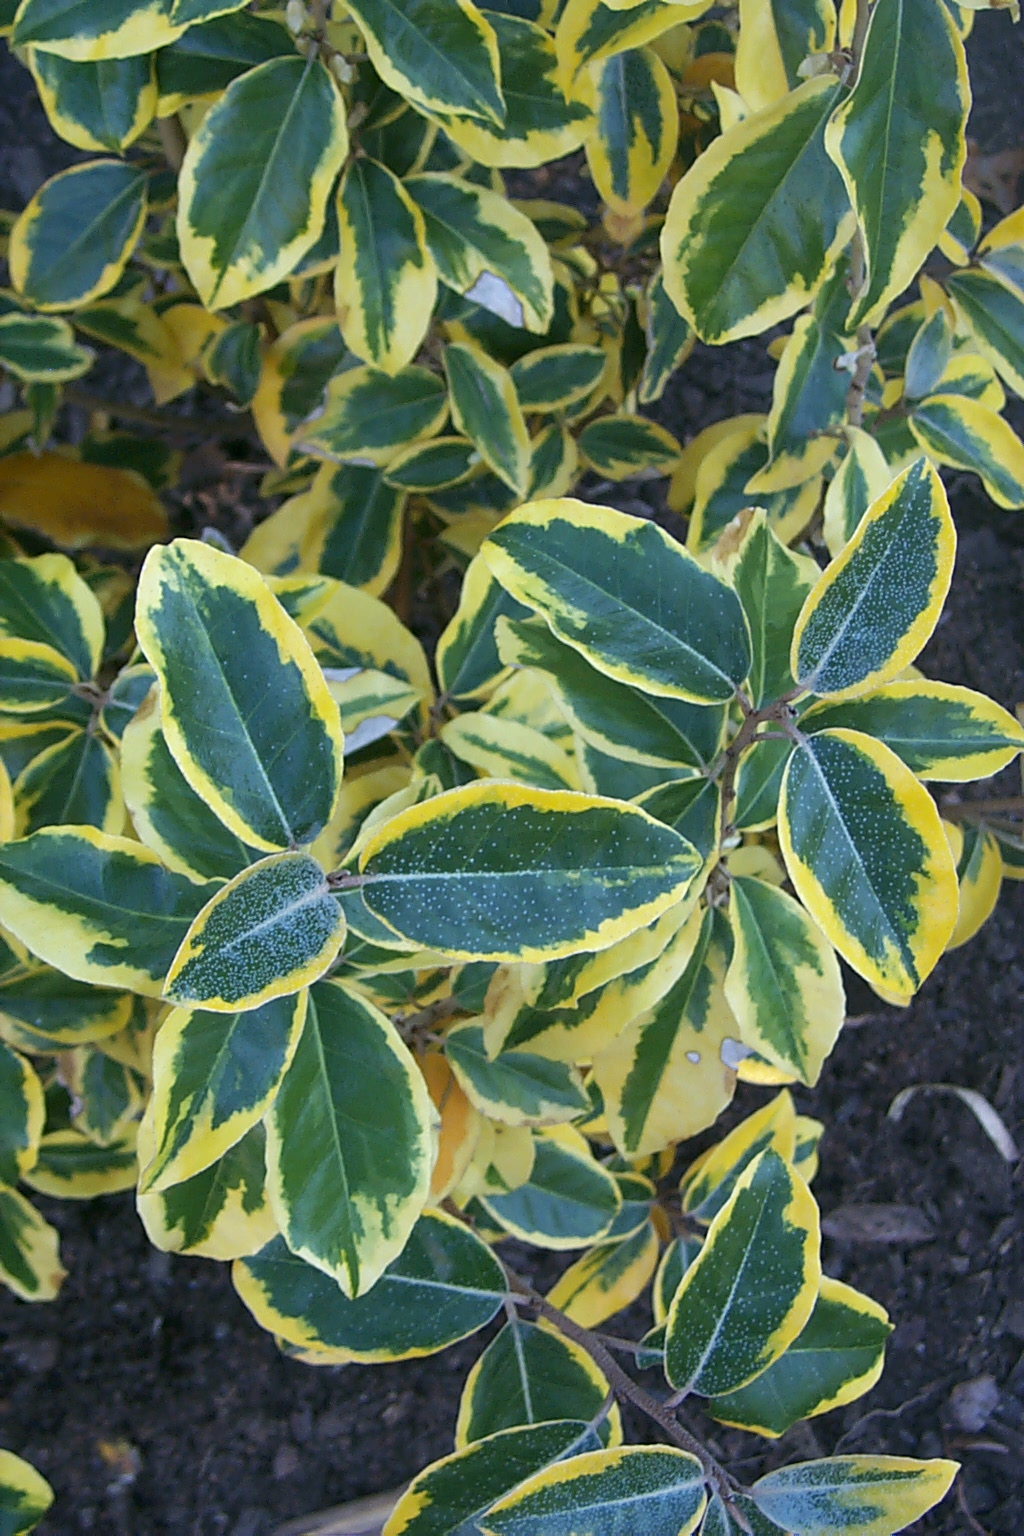 Elaeagnus ×ebbingei 'Gilt Edge' is a hybrid between E. macrophylla and E. pungens with a regular, narrow yellow margin to each leaf.